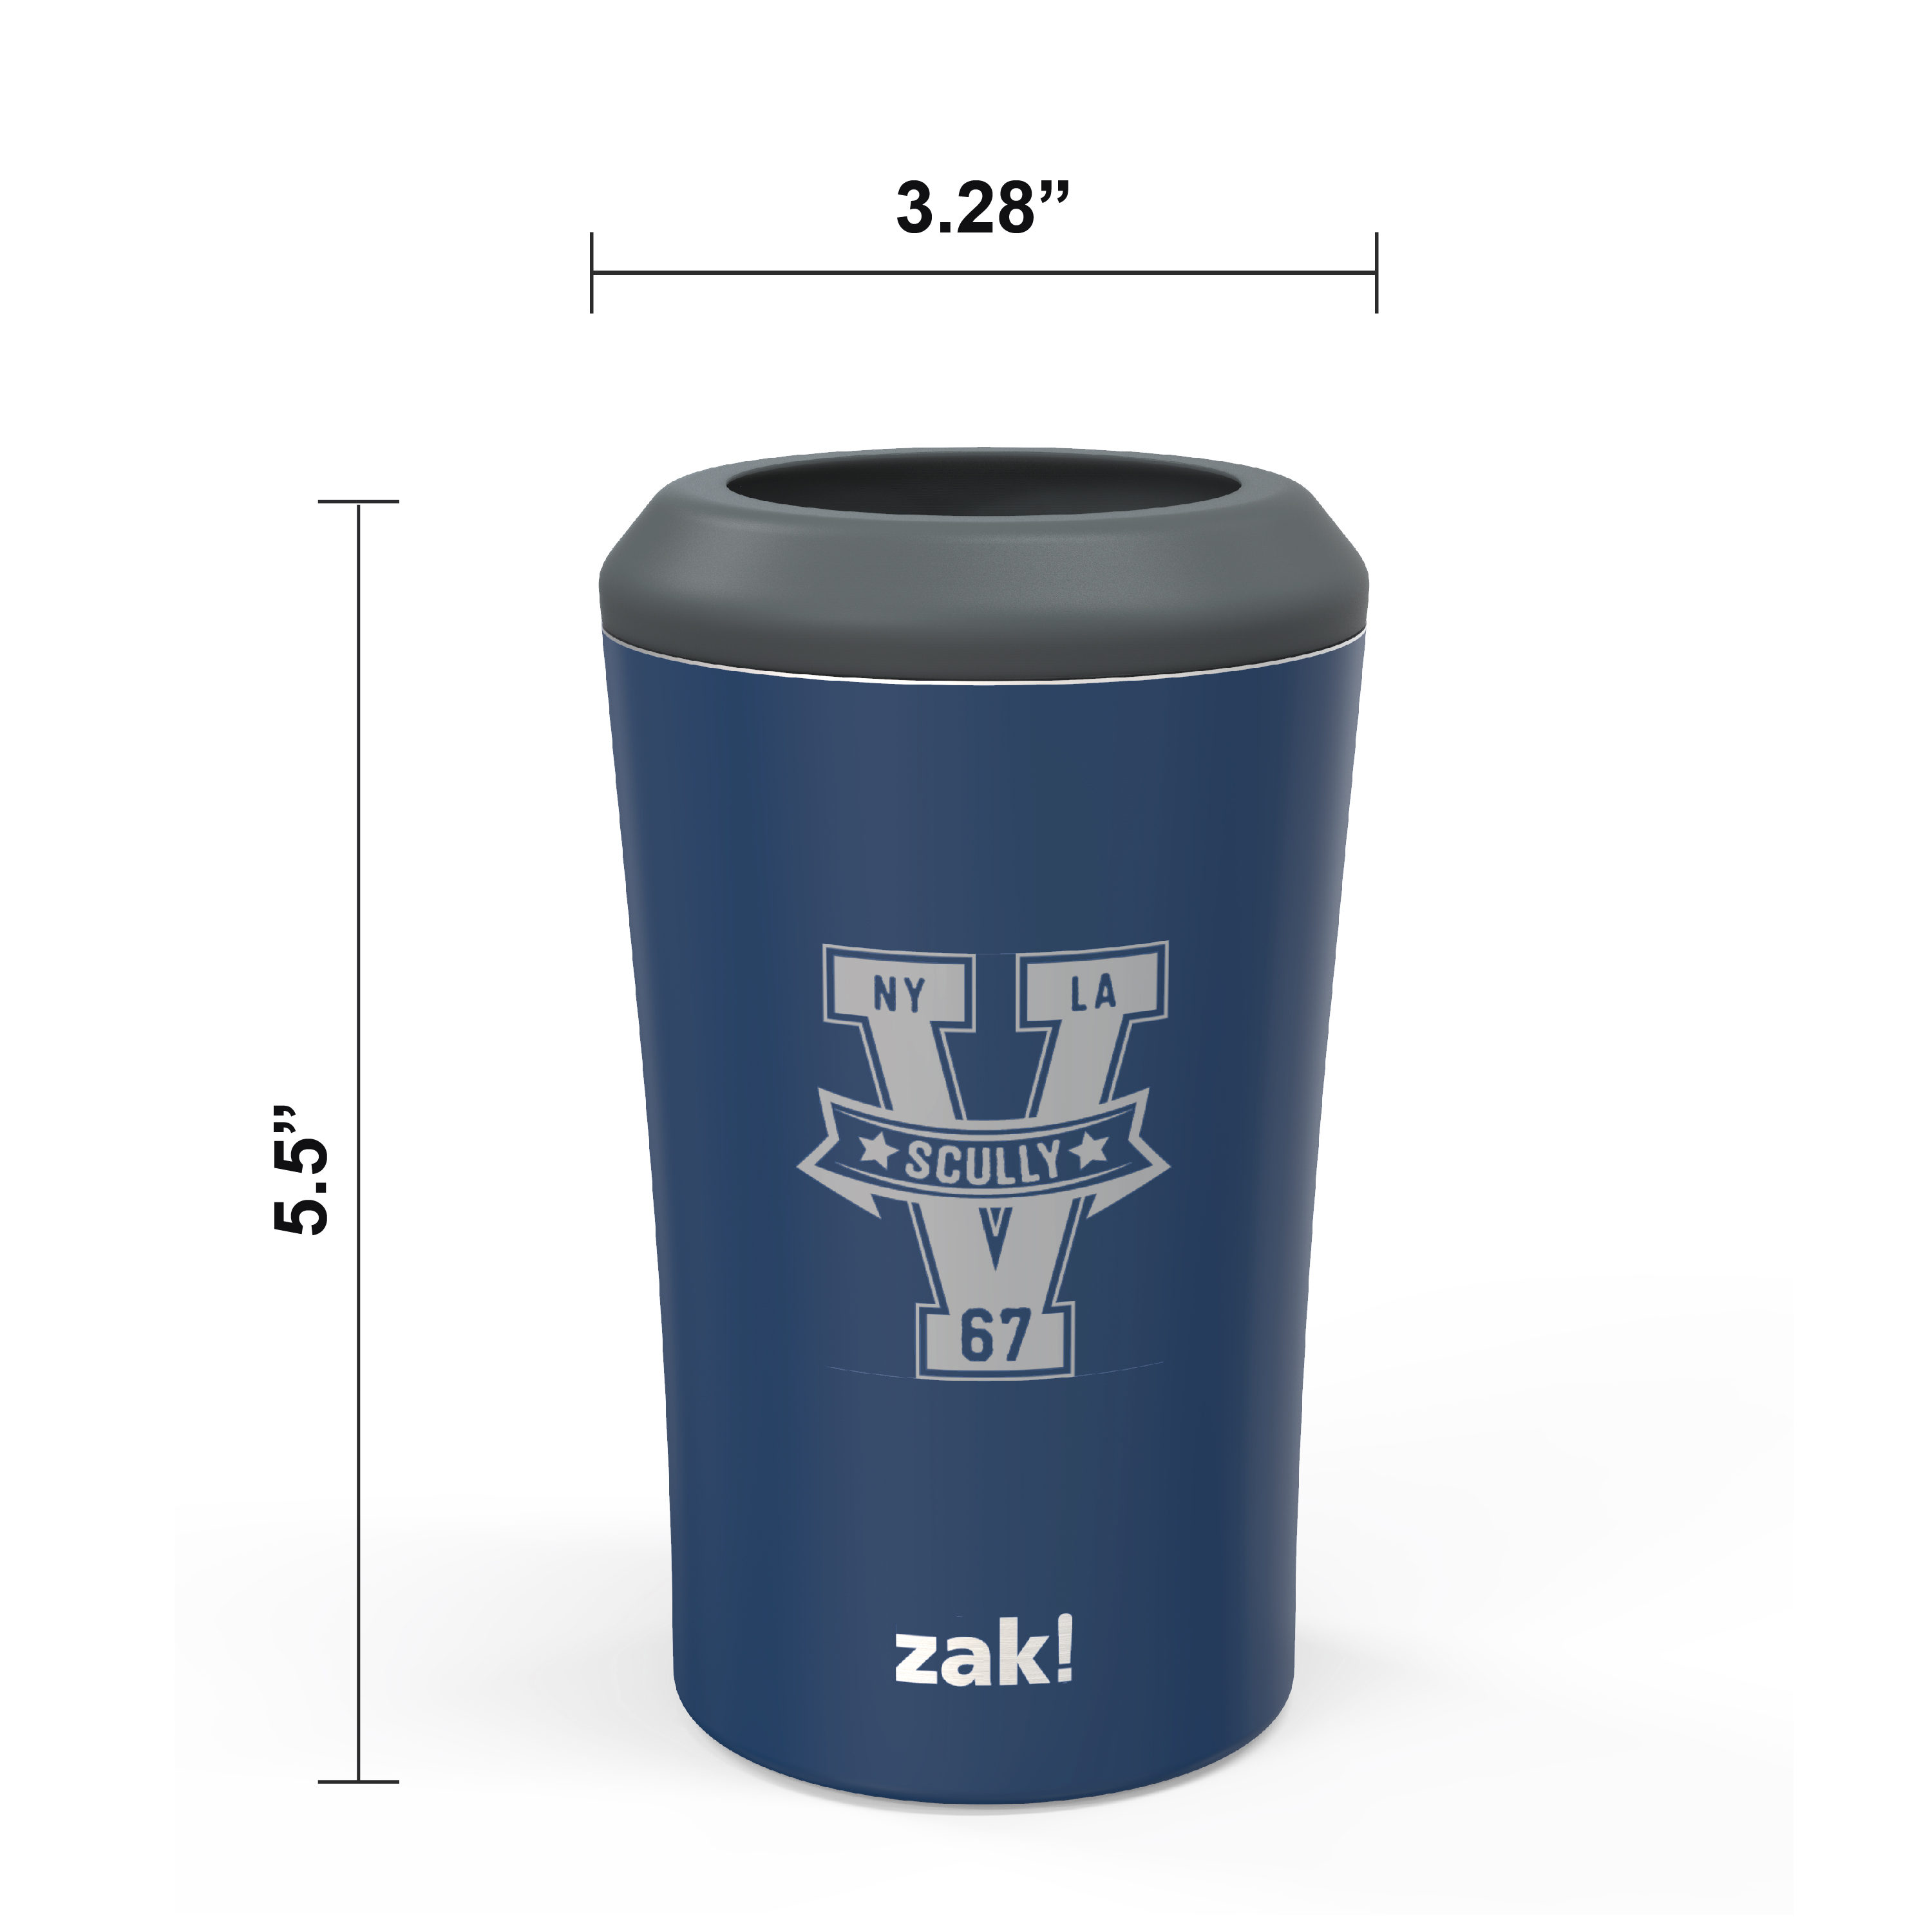 Zak Hydration 12 ounce Double Wall Stainless Steel Can and Bottle Cooler with Vacuum Insulation, Vin Scully slideshow image 8